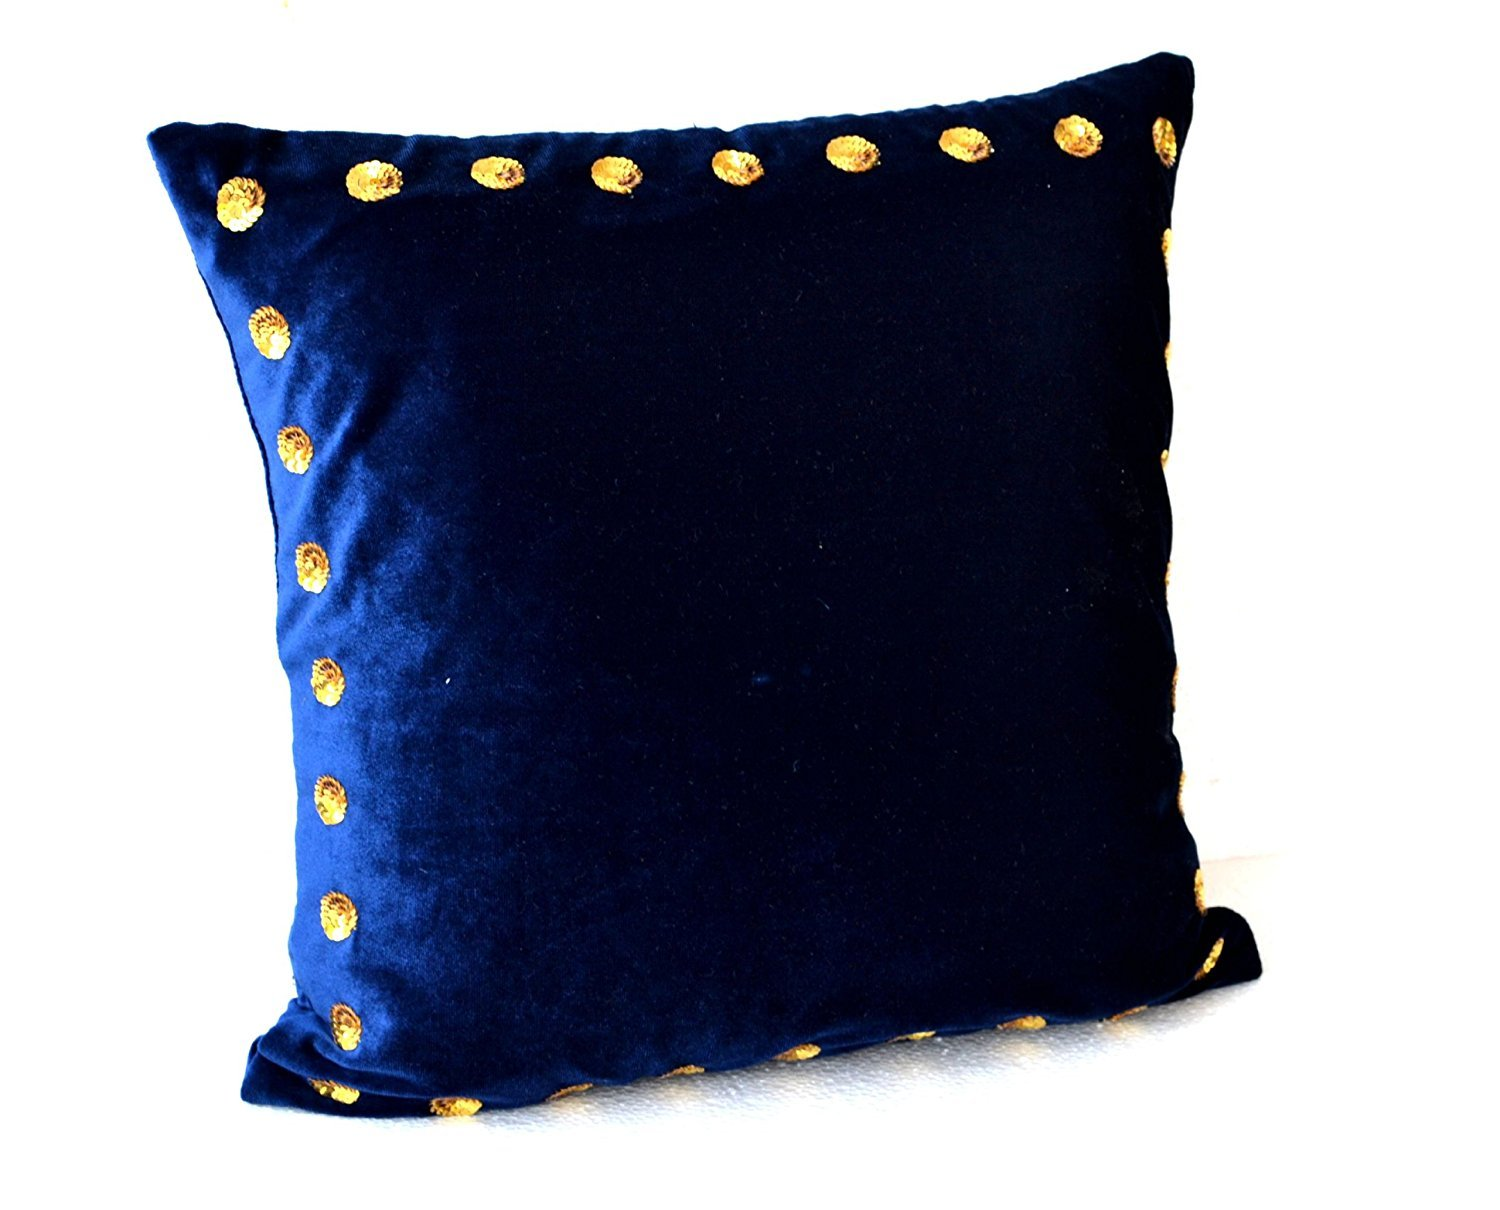 Fantastic Navy Blue Pillow Covers Navy Blue Pillow In Velvet With Gold Sequin Detail 16X16 Navy Blue Throw Pillows In Velvet Toss Pillows Gift Pillows Theyellowbook Wood Chair Design Ideas Theyellowbookinfo